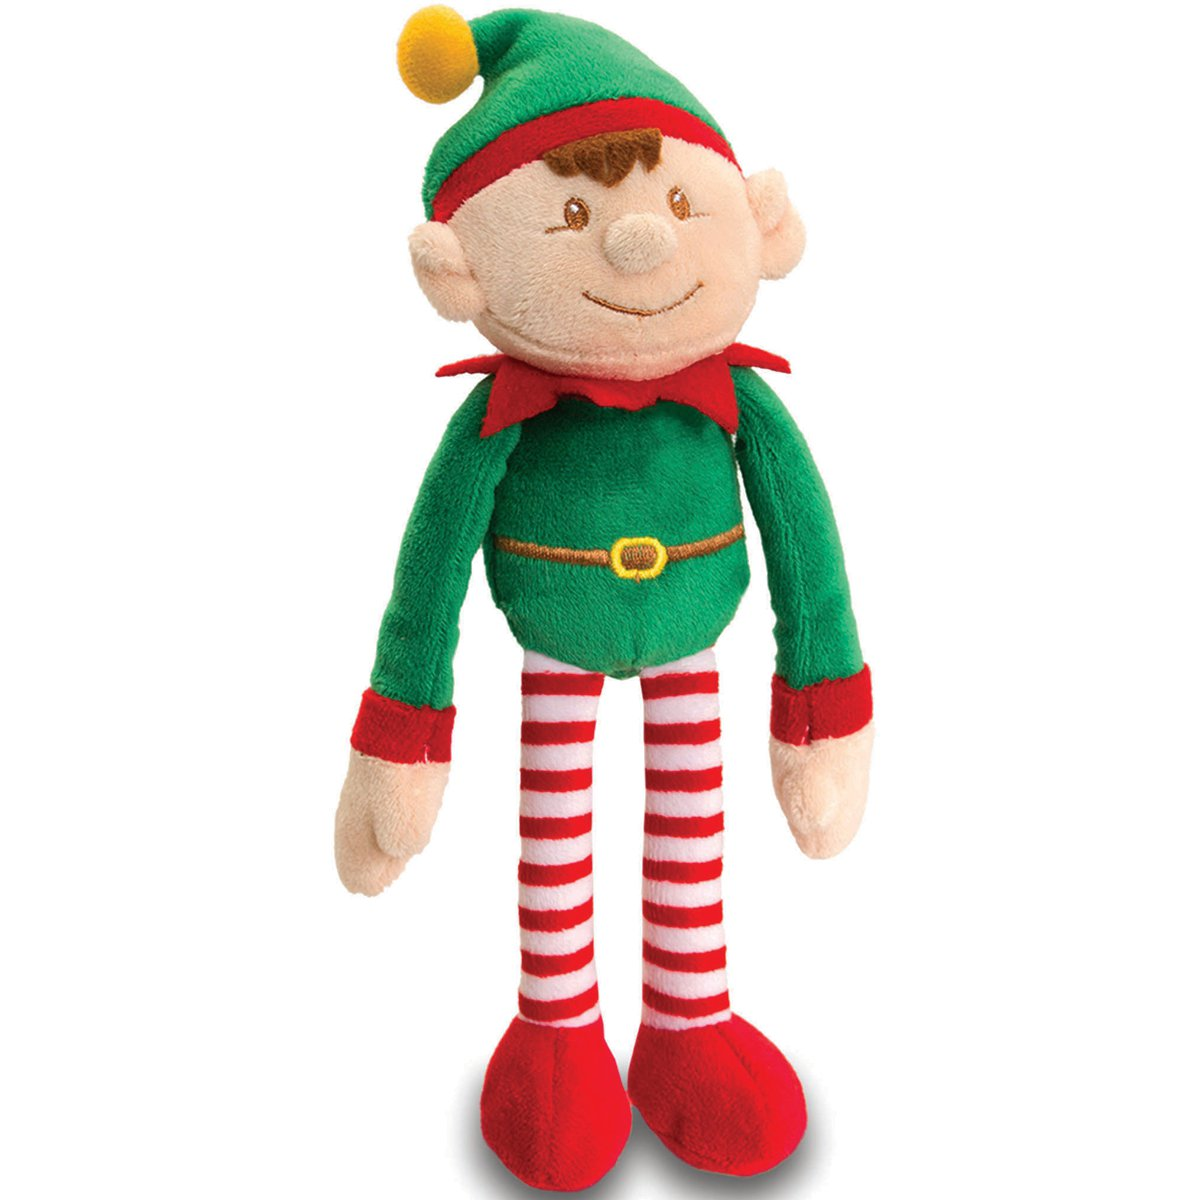 Small 12cm Keel Toys Christmas Elf